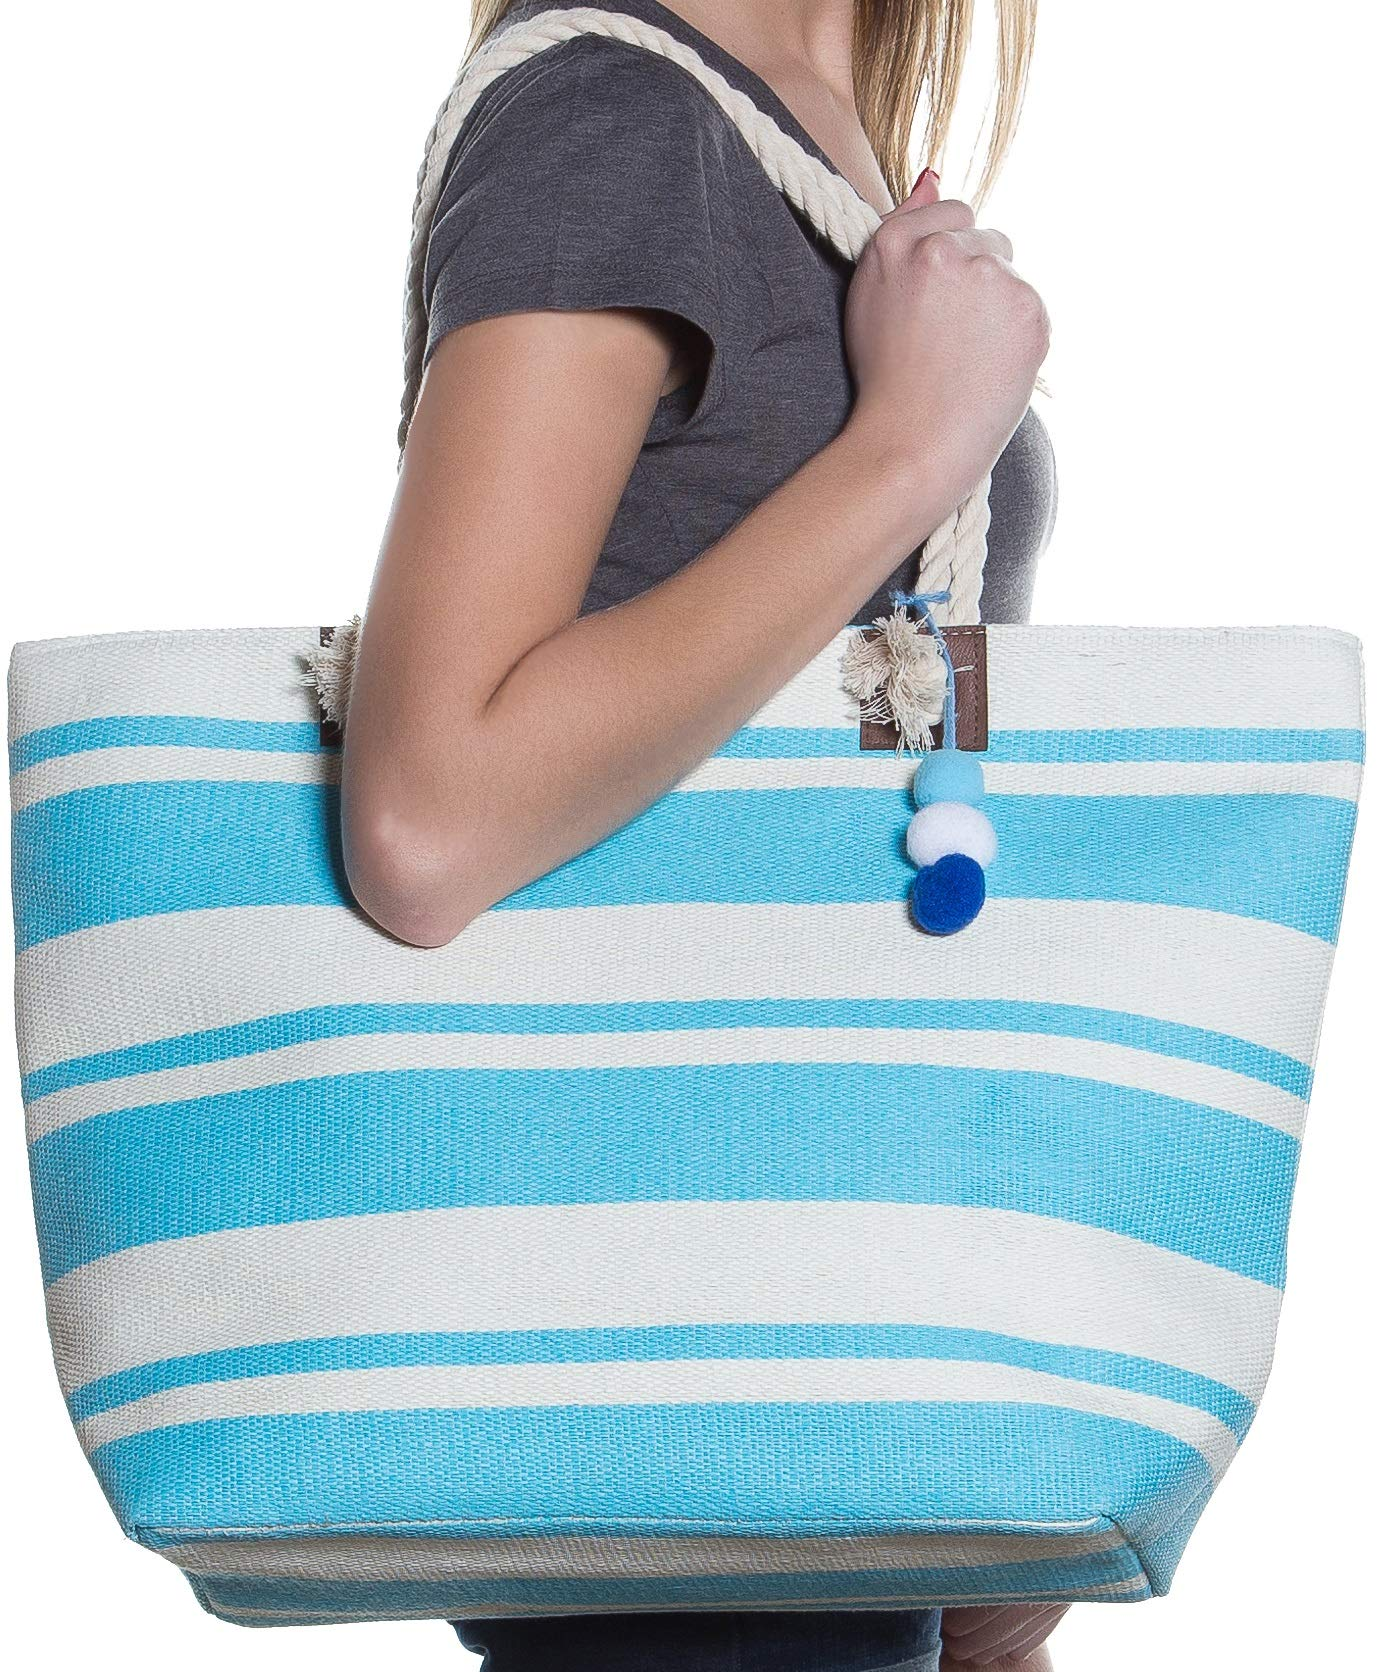 Beach Bag By Pier 17 - Beach Tote Bag withTop Zipper Closure, Cotton Rope Handles, 2 Inner Pocket, Built-In Inner Backing for Extra Durability - L20''xH15''xW6'' (Blue - White)